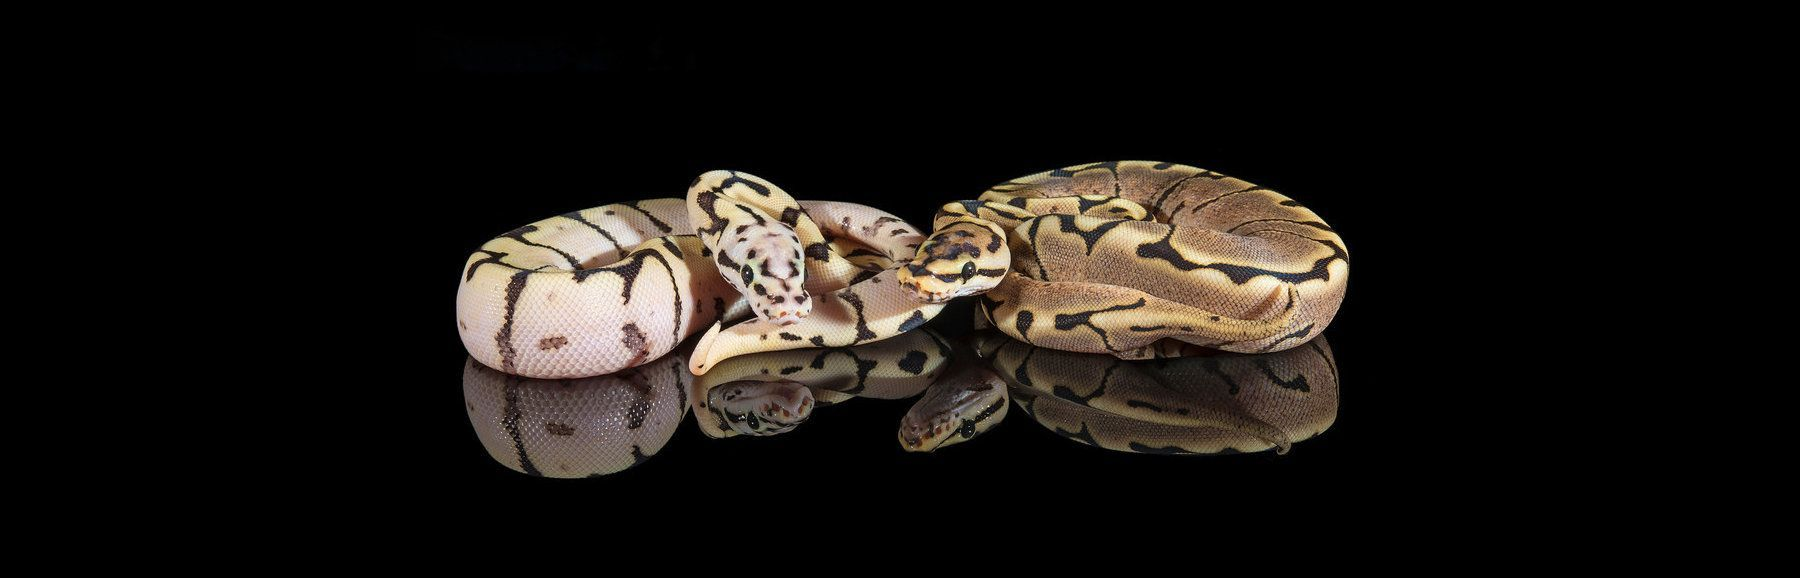 Ball Pythons For Sale Largest Selection In The World